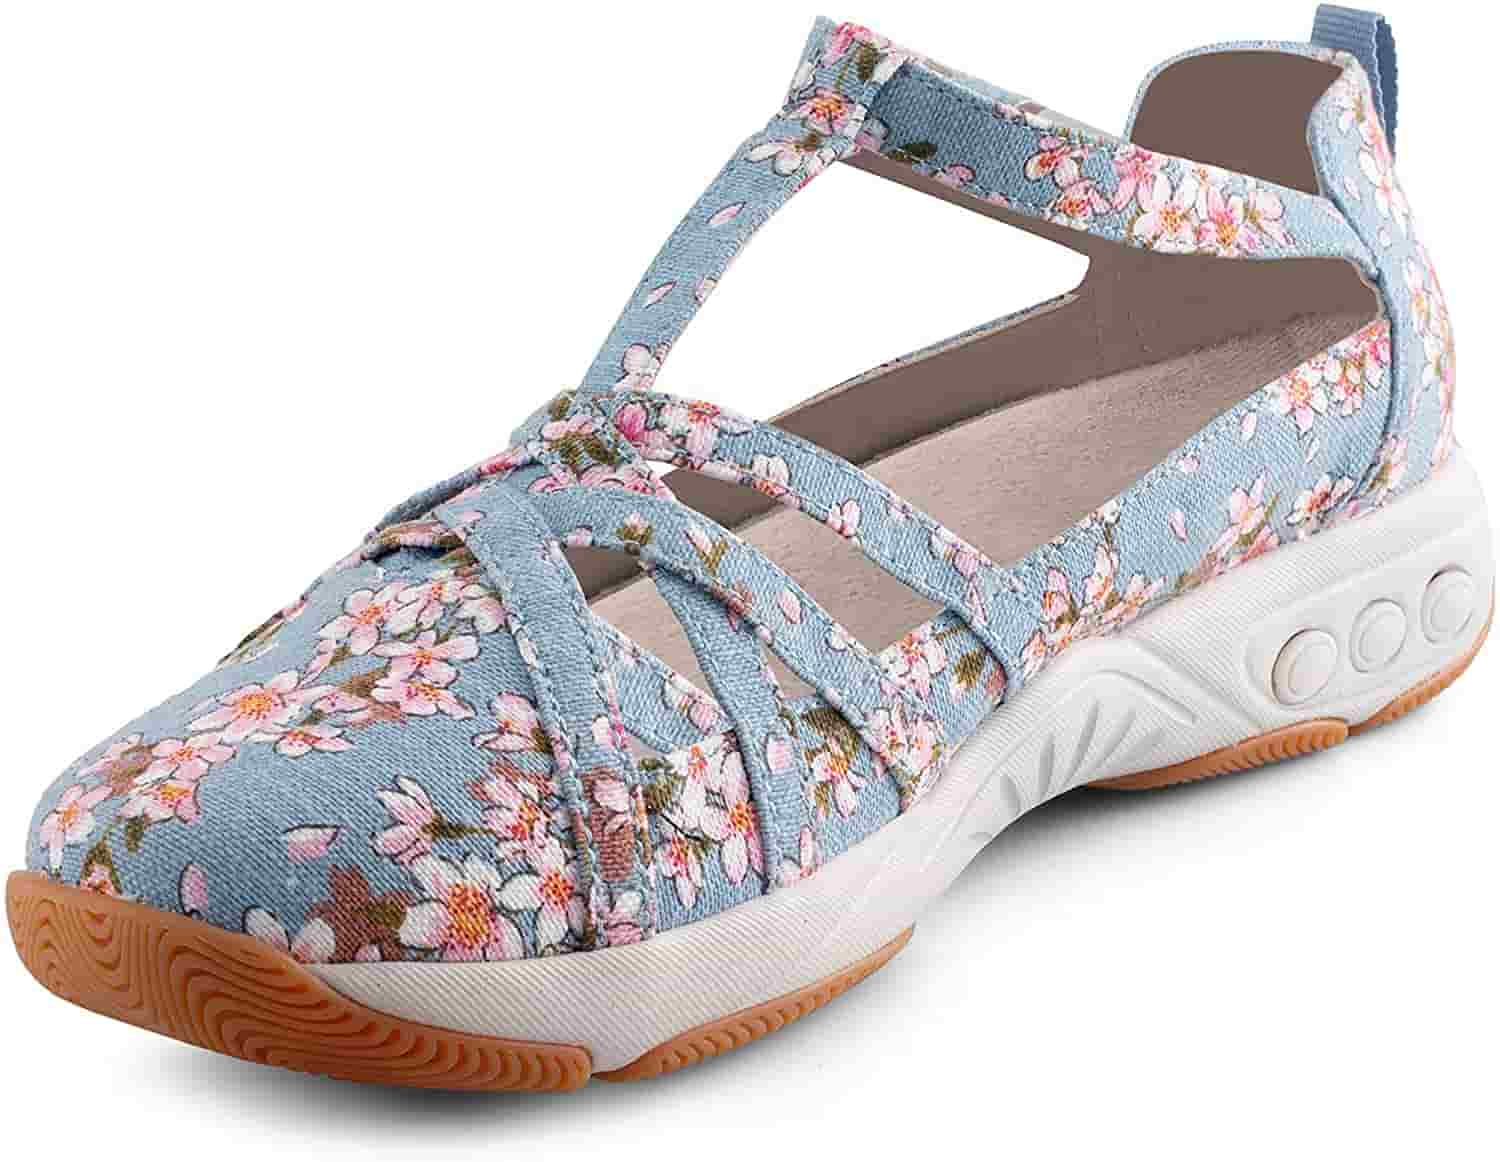 Therafit orthopaedic sandals for women floral